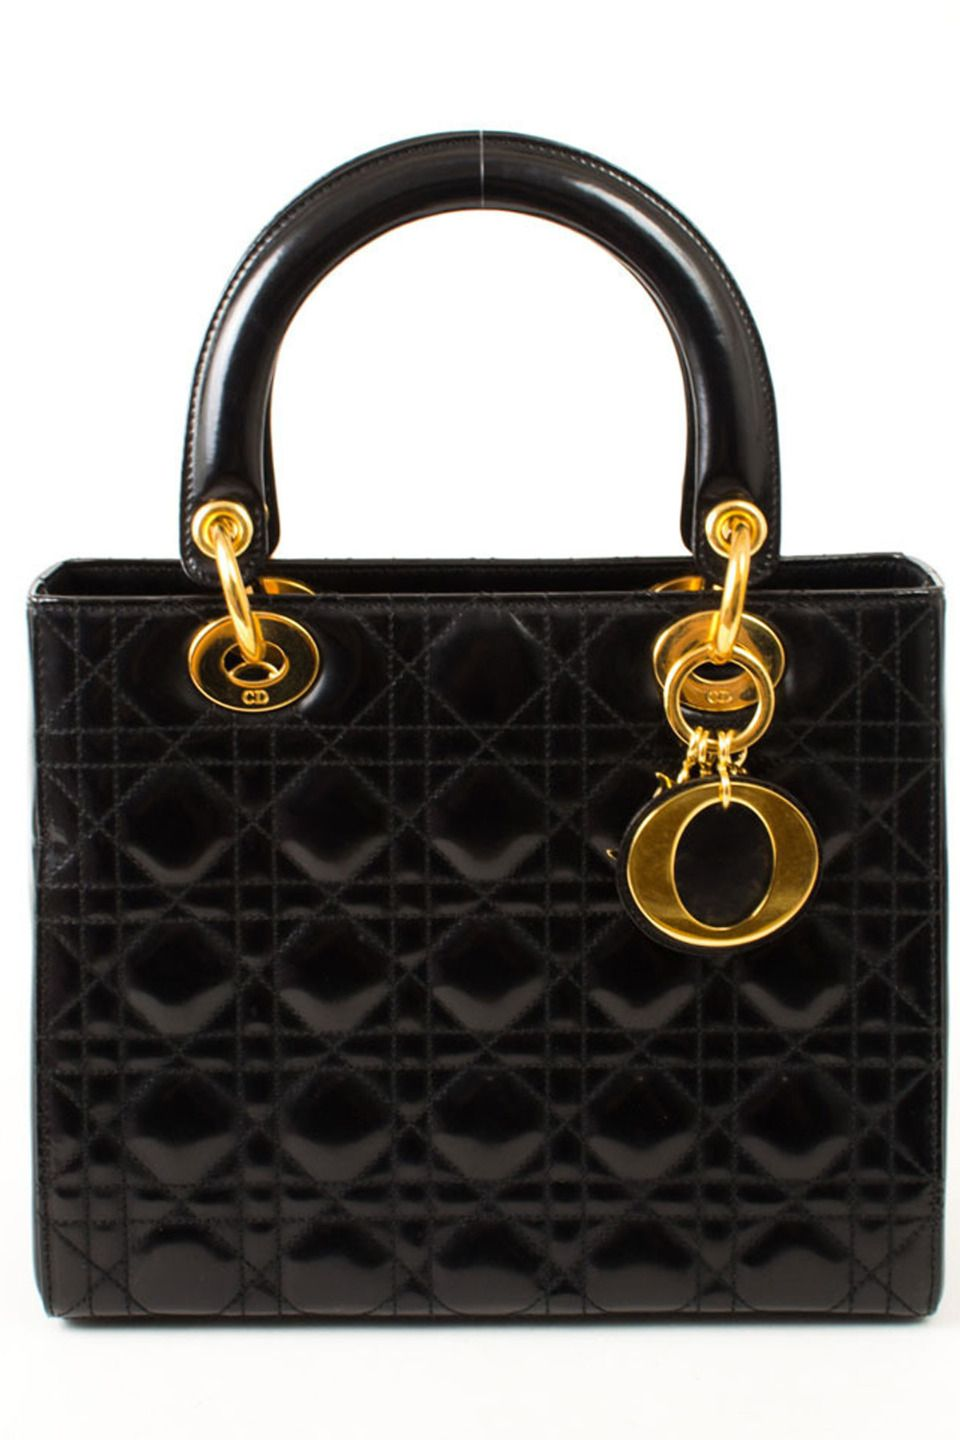 282392cee84 Dior Lady Dior Hand Bag In Black E - Beyond the Rack